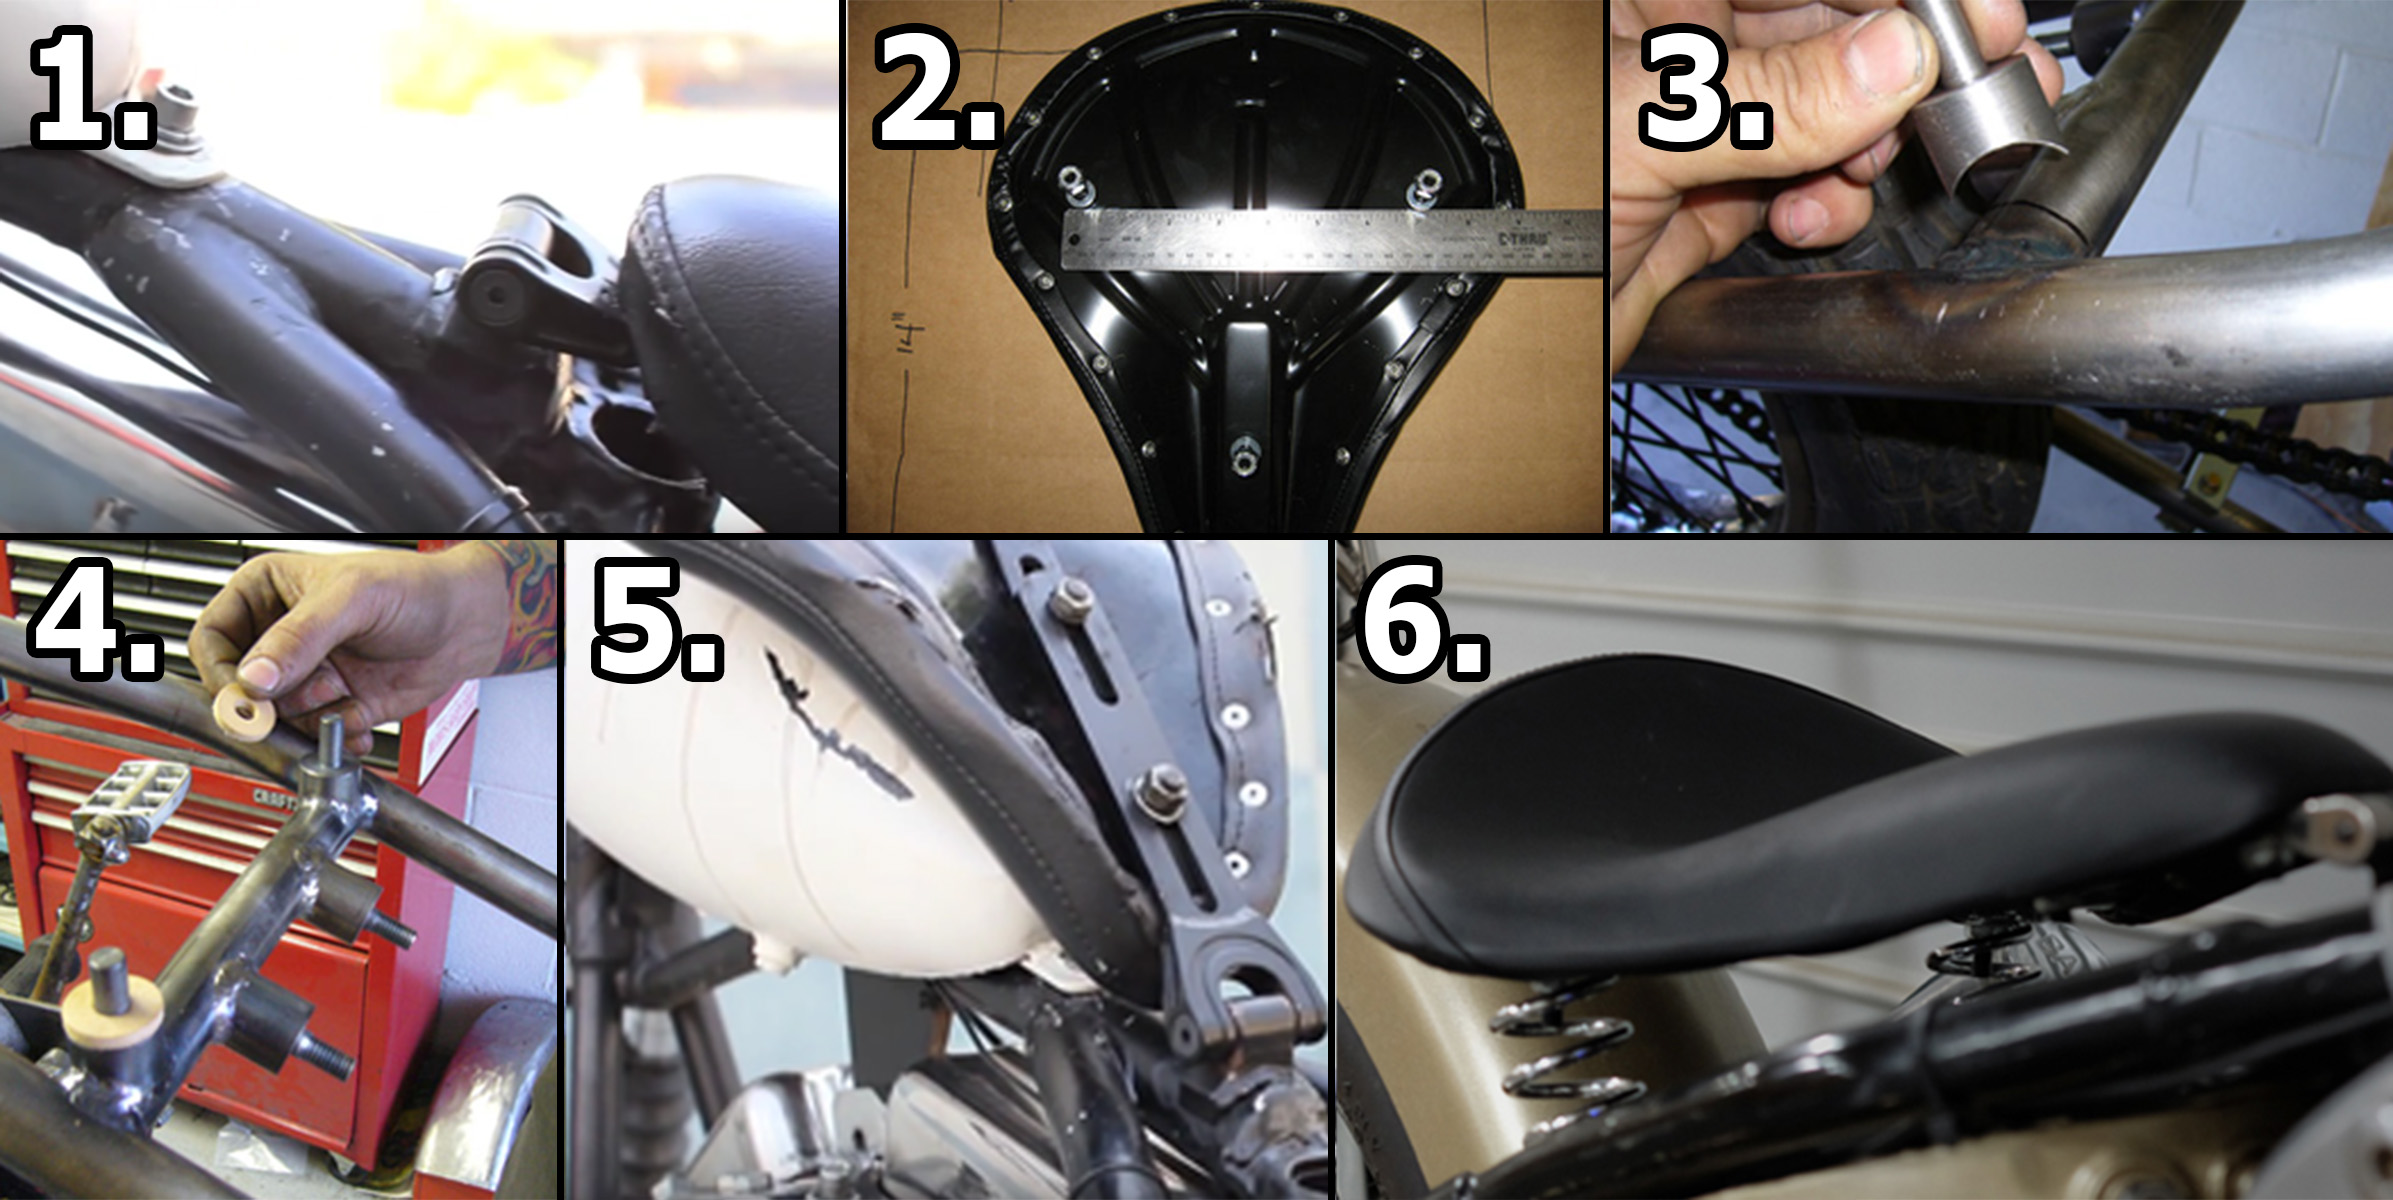 Diy Solo Seat Installation Steps For Harleys And Custom Motorcycles Get Lowered Cycles